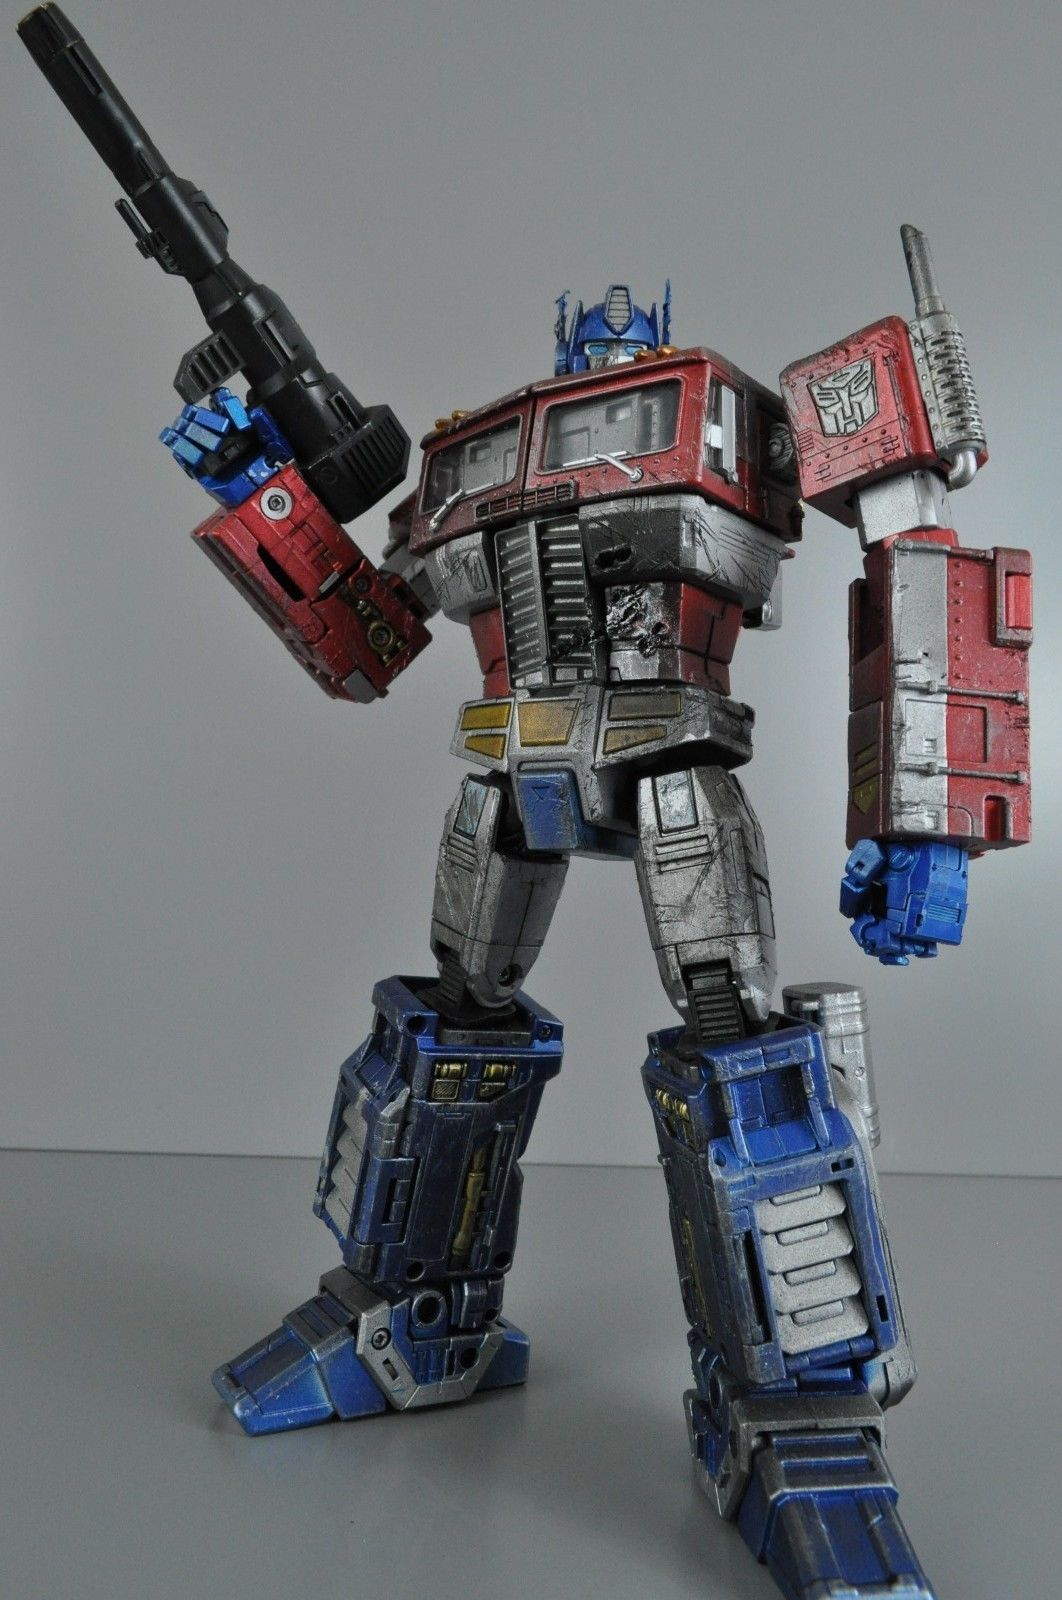 Transformers Custom Masterpiece Transformers Transformers Masterpiece Custom Masterpiece Transformers Custom Custom tQrChdxs